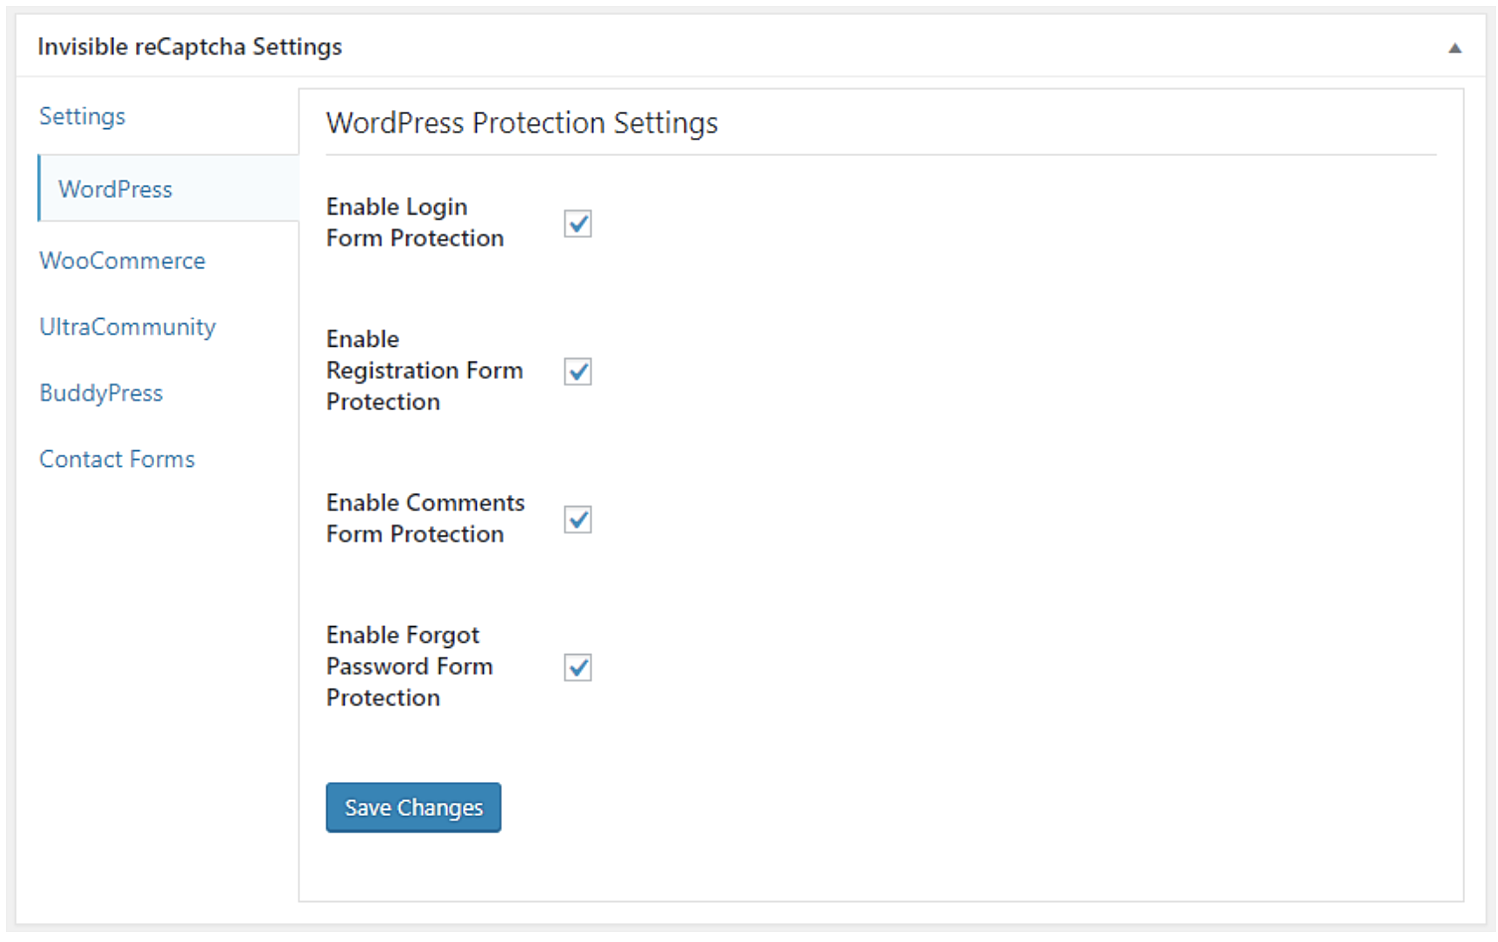 protection settings control spam integrating google invisible recaptcha wordpress site